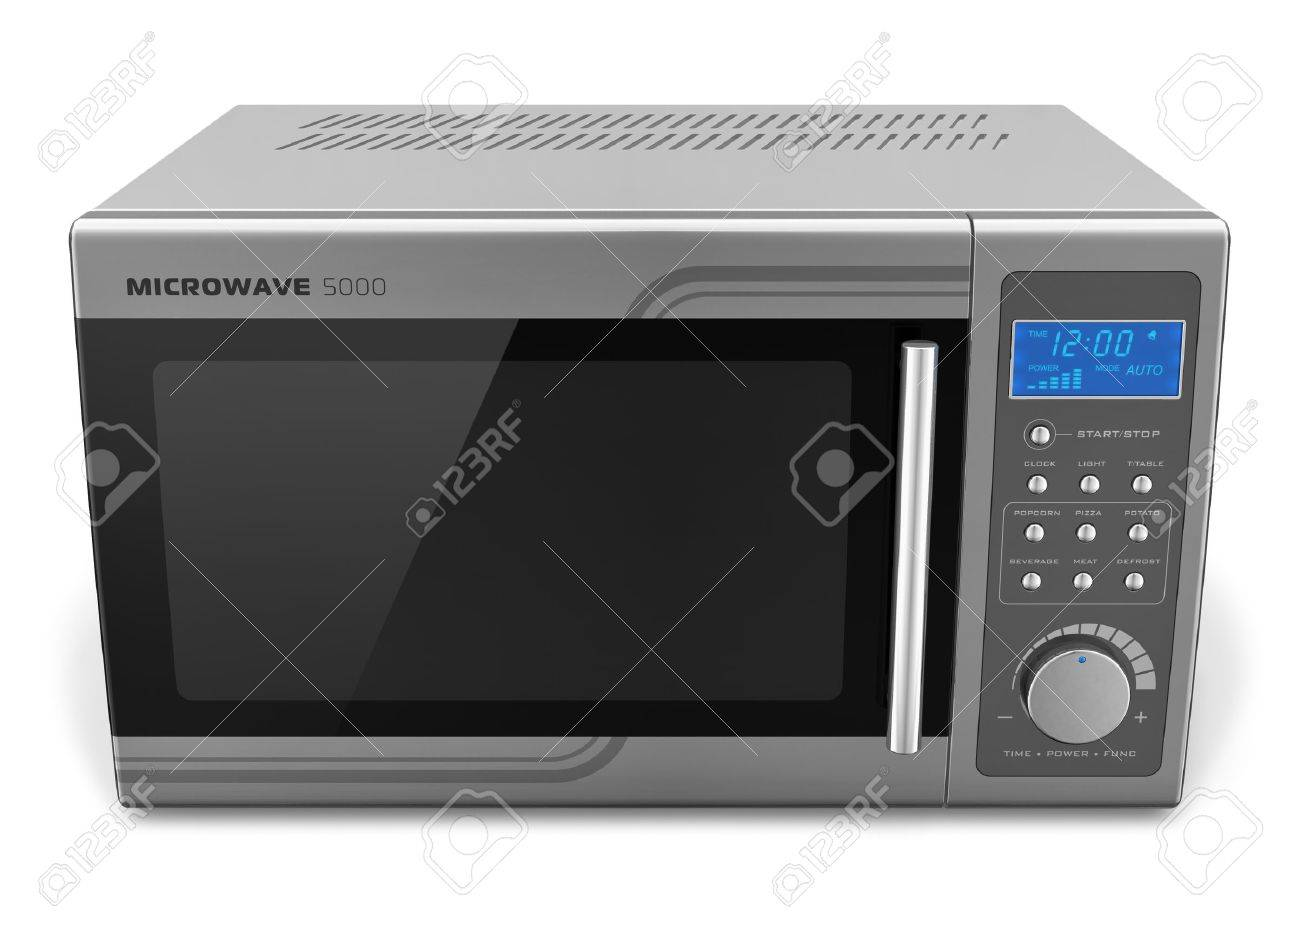 Microwave oven isolated on white background     Design is my own and all text labels are fully abstract Stock Photo - 13193014